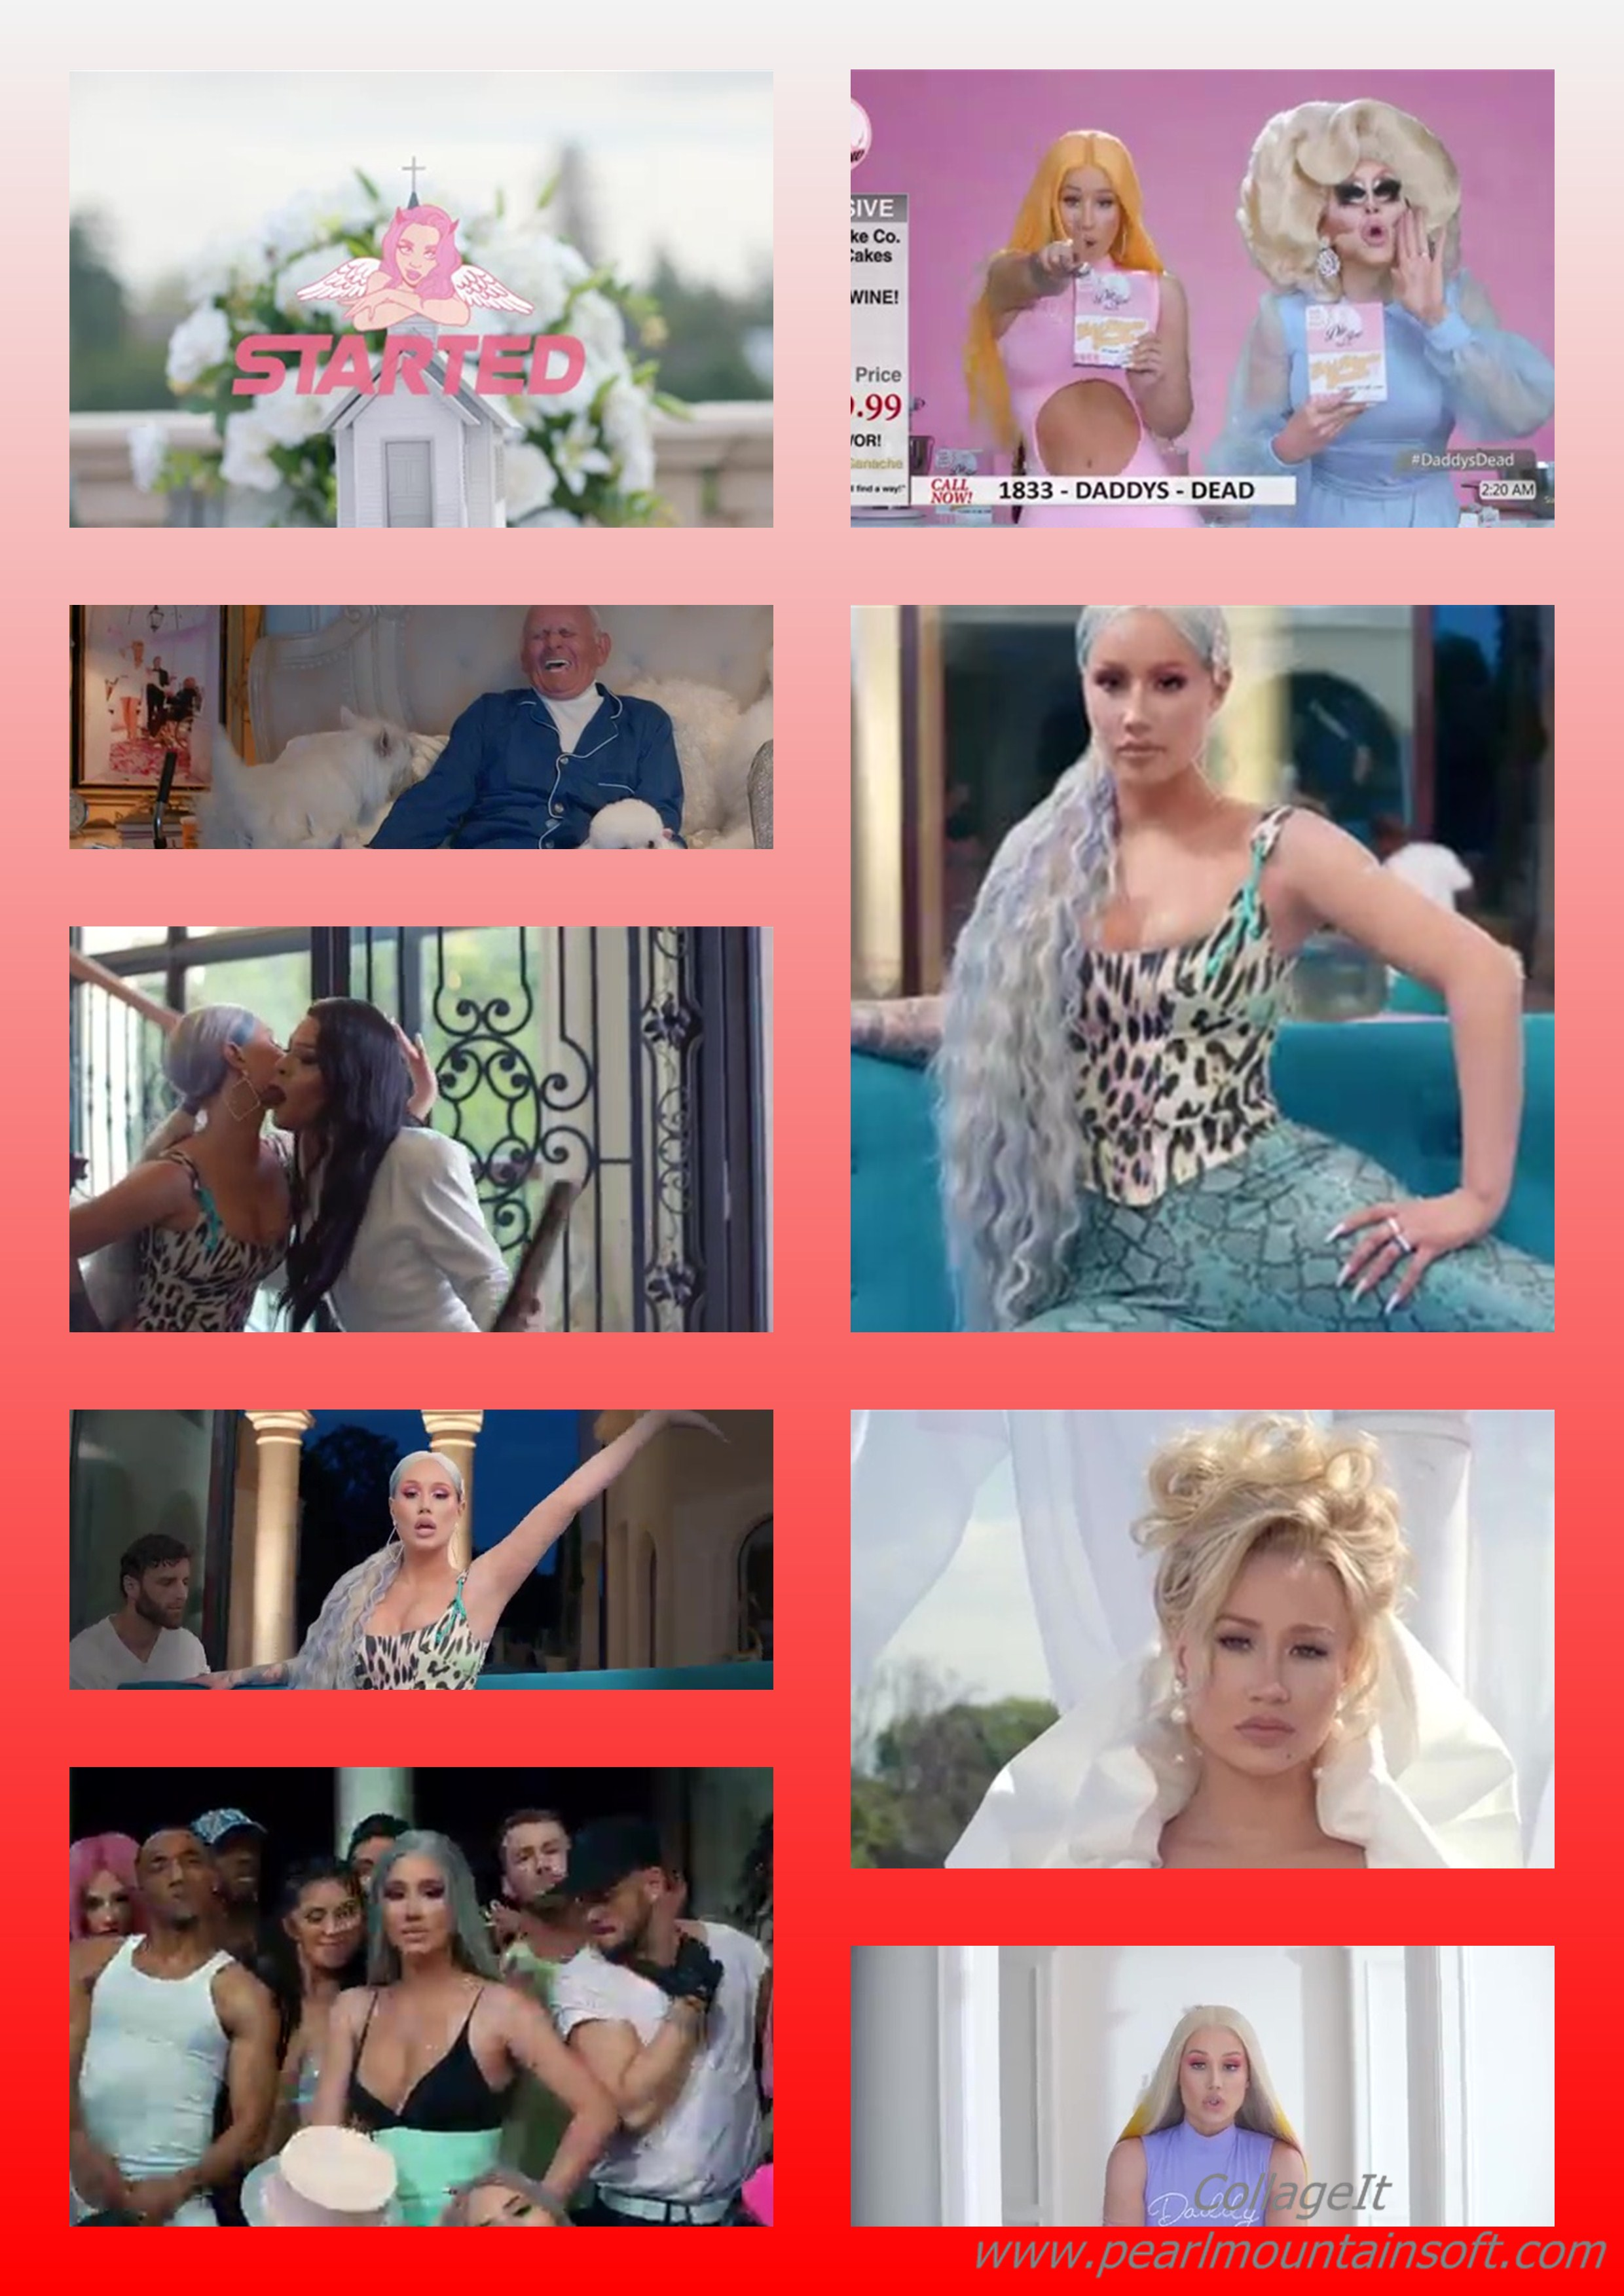 """(+LYRICS+TRANSLATION+MEANING) MUSIC REVIEW: STARTED BY IGGY IZILEA """"WHAT EXACTLY IS THE MORAL IN THIS IGGY'S VIDEO?'"""